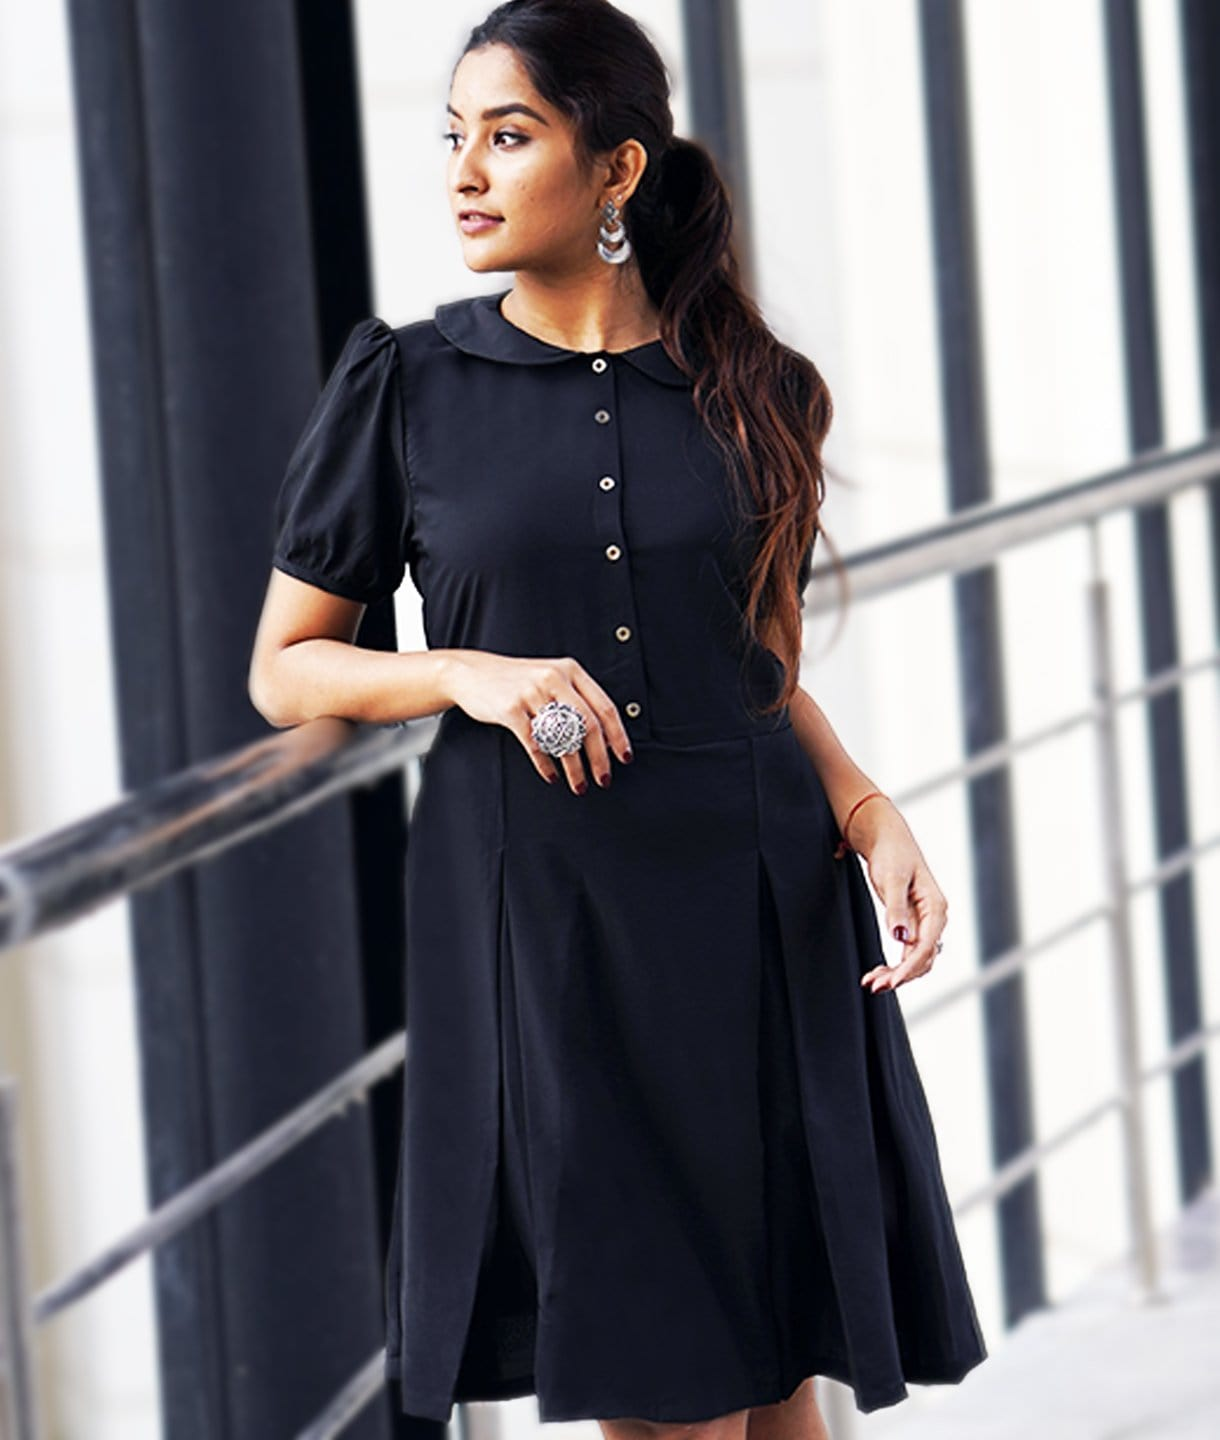 Solid Black Peterpan Collar Skater Dress